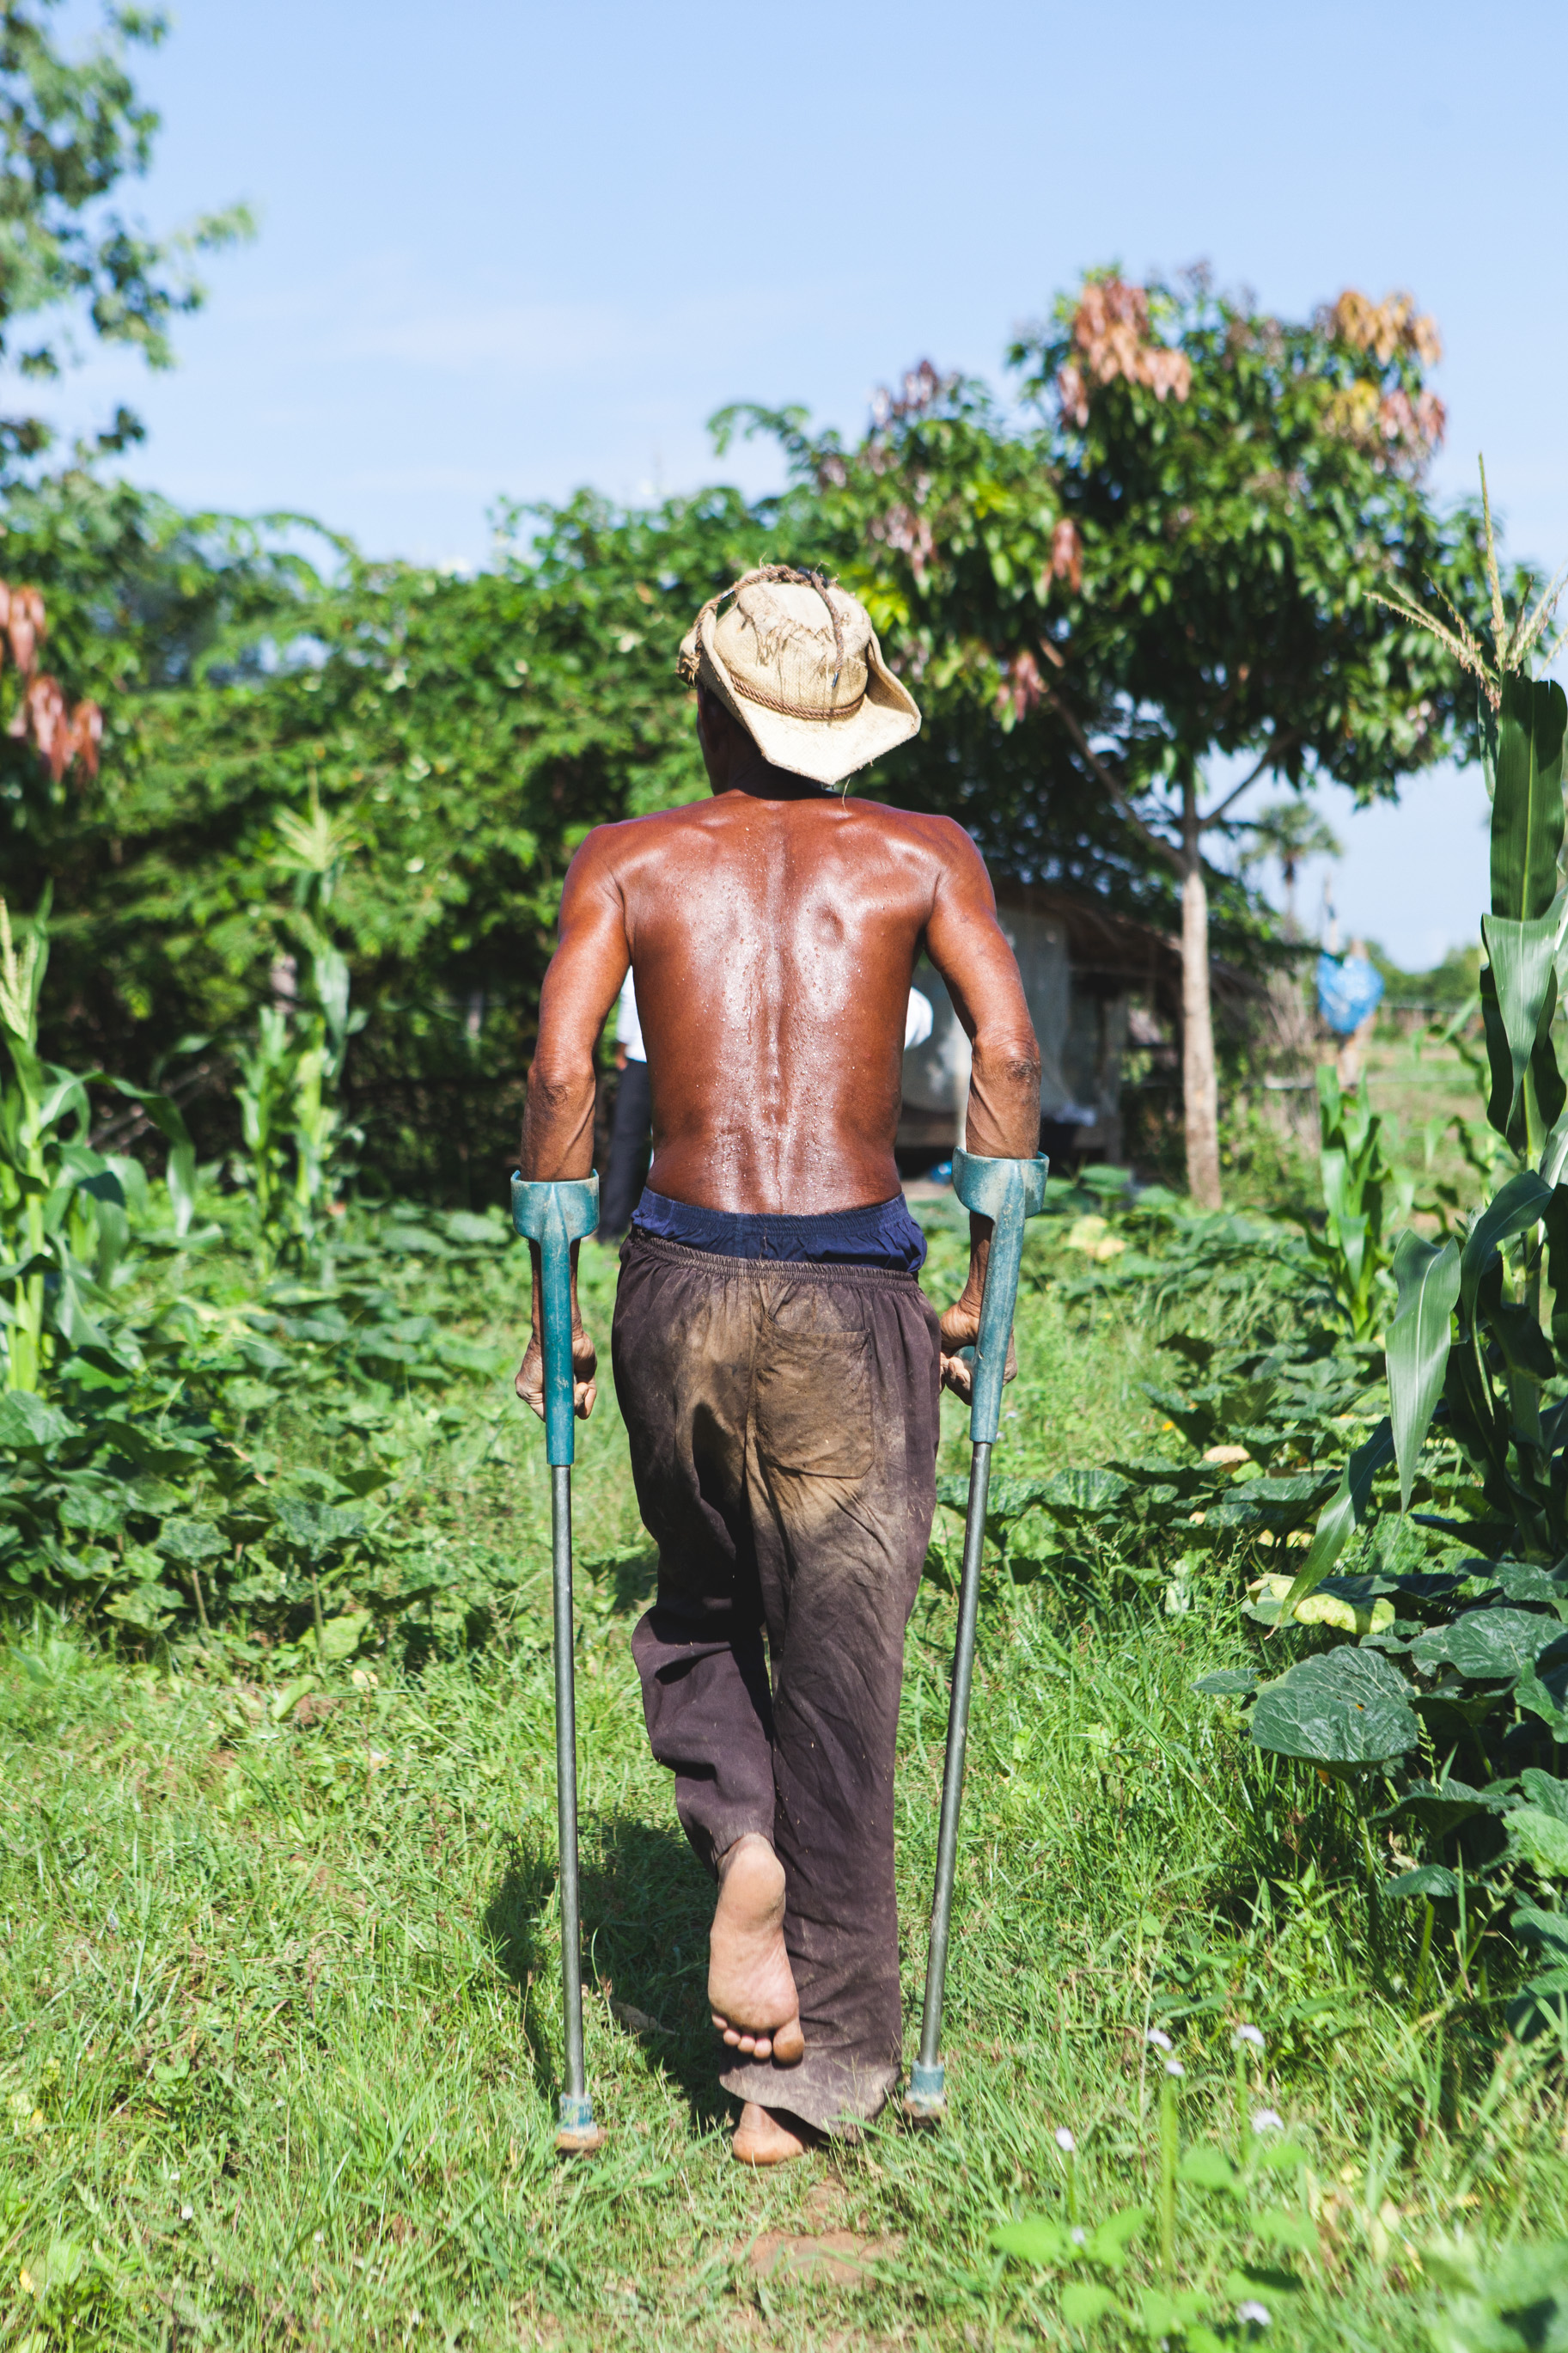 Though this grandpa broke his leg more than a decade ago from falling out of a palm tree, today he is his community's model farmer in rural Kampong Speu province, Cambodia